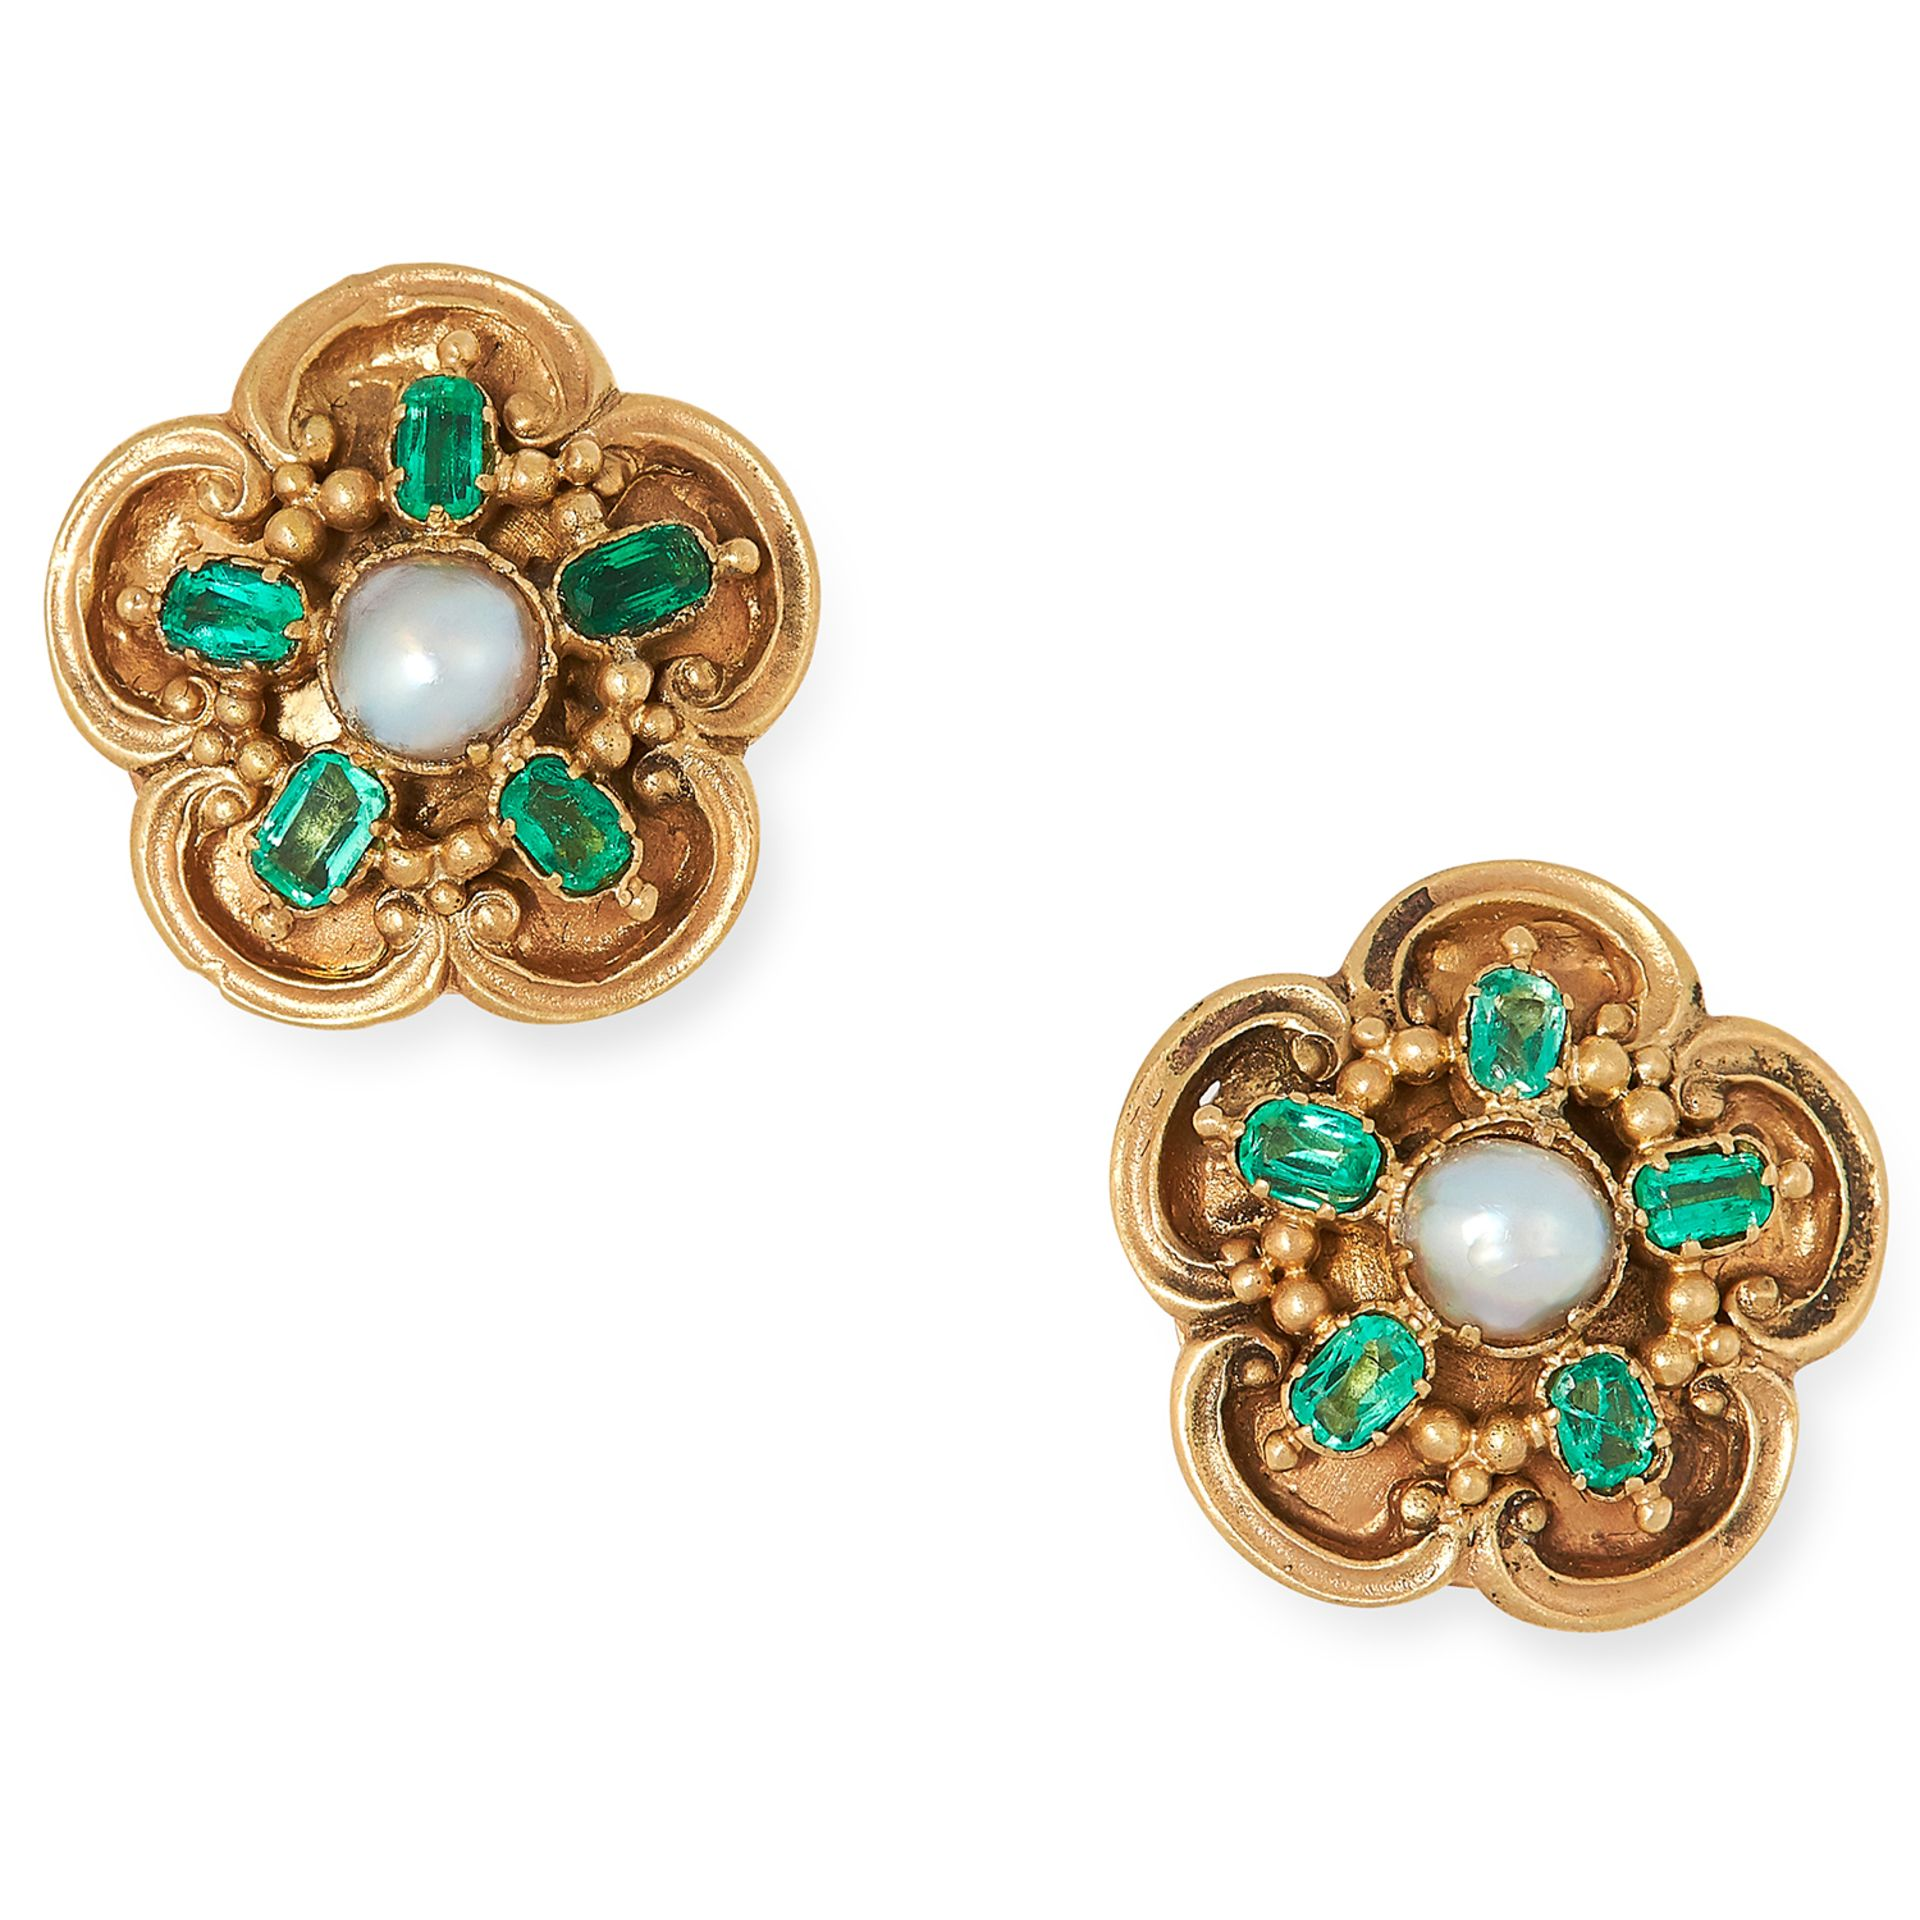 ANTIQUE EMERALD AND PEARL EARRINGS each set with a seed pearl and a oval cut emerald, 1.1cm, 4.1g.